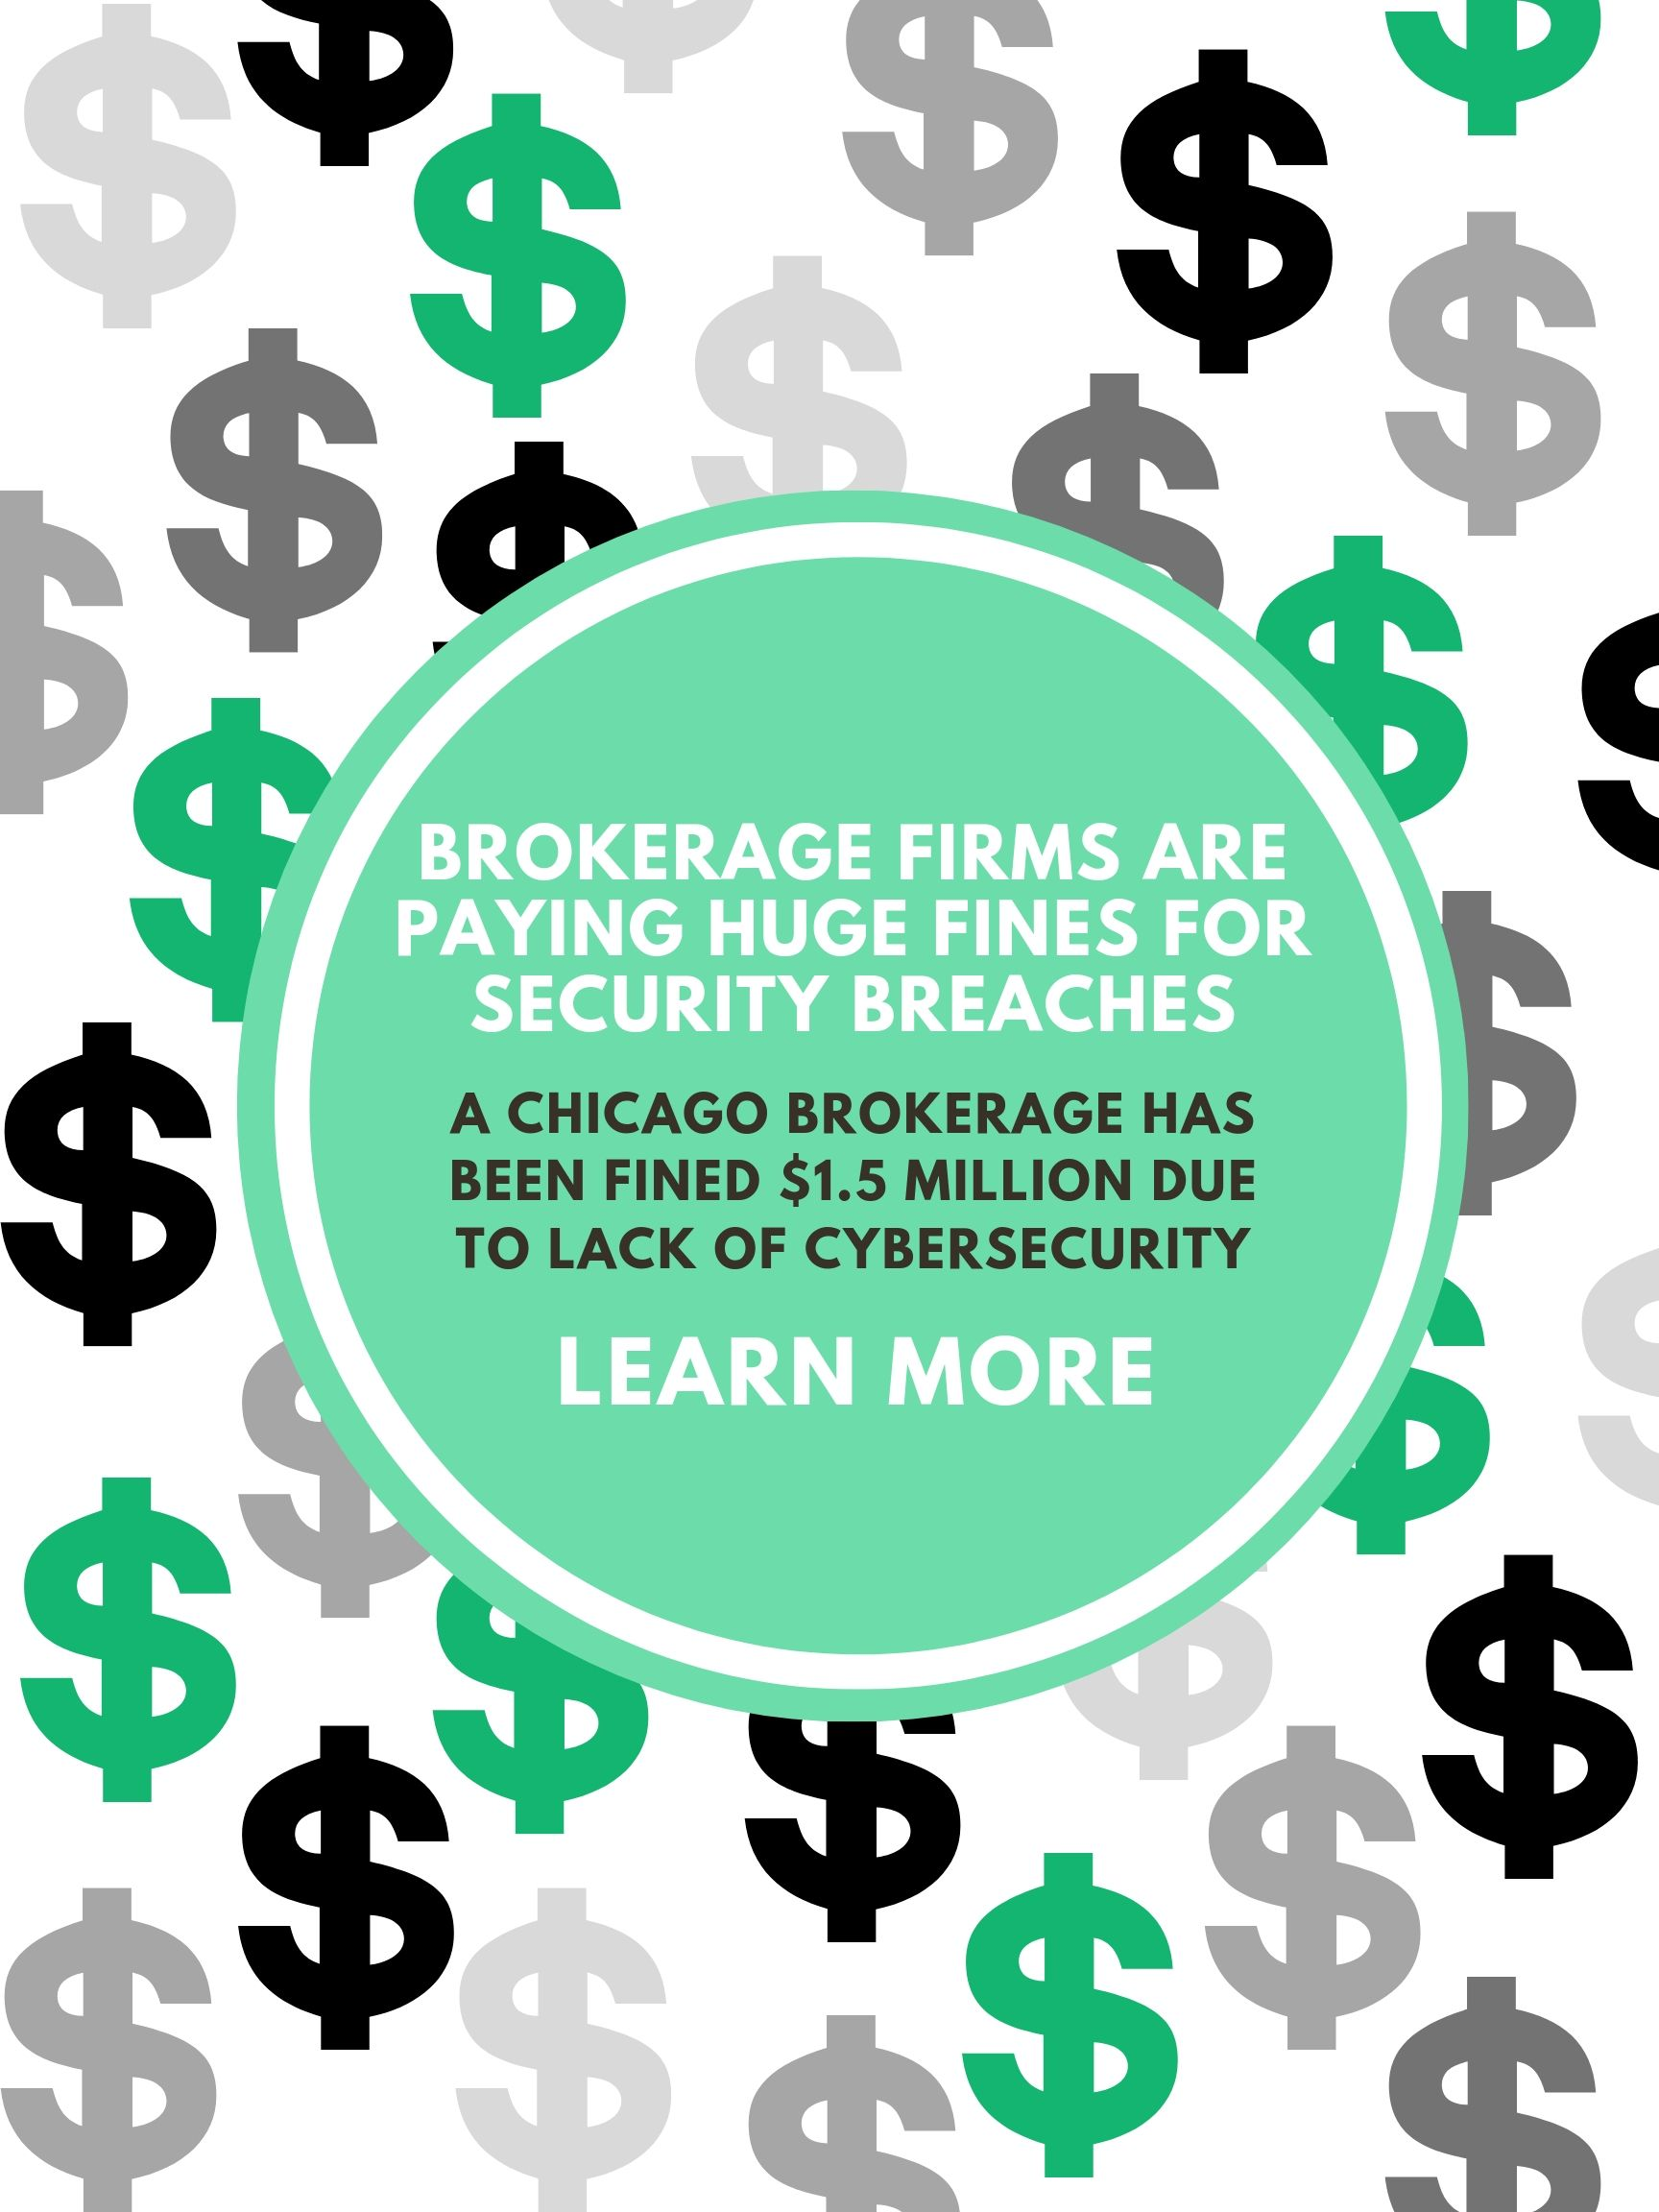 cybercime cybercriminals lack of cybersecurity Chicago brokerage will pay a $1.5 million fine